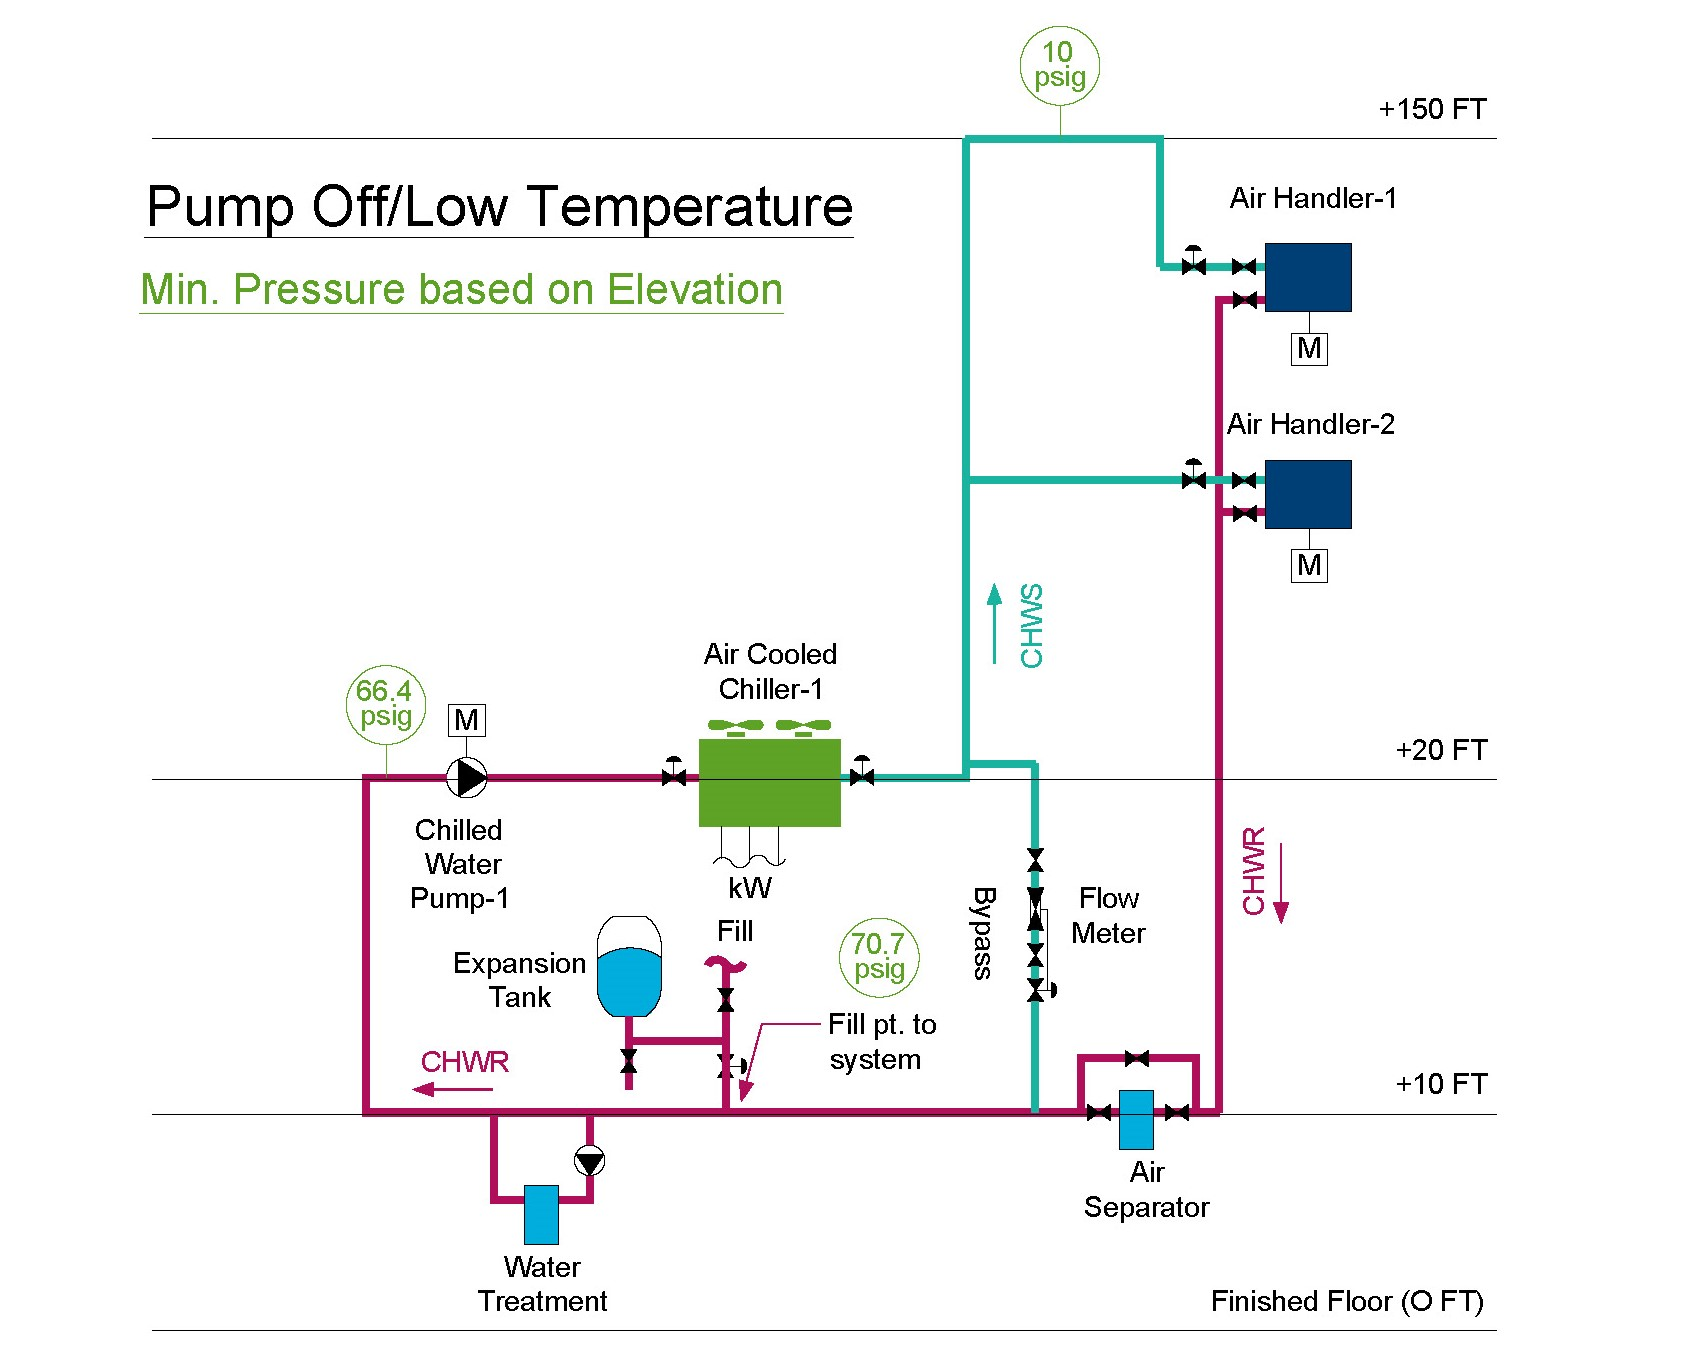 hight resolution of chilled water diagram with an expansion tank with the pump off and the temperature at its